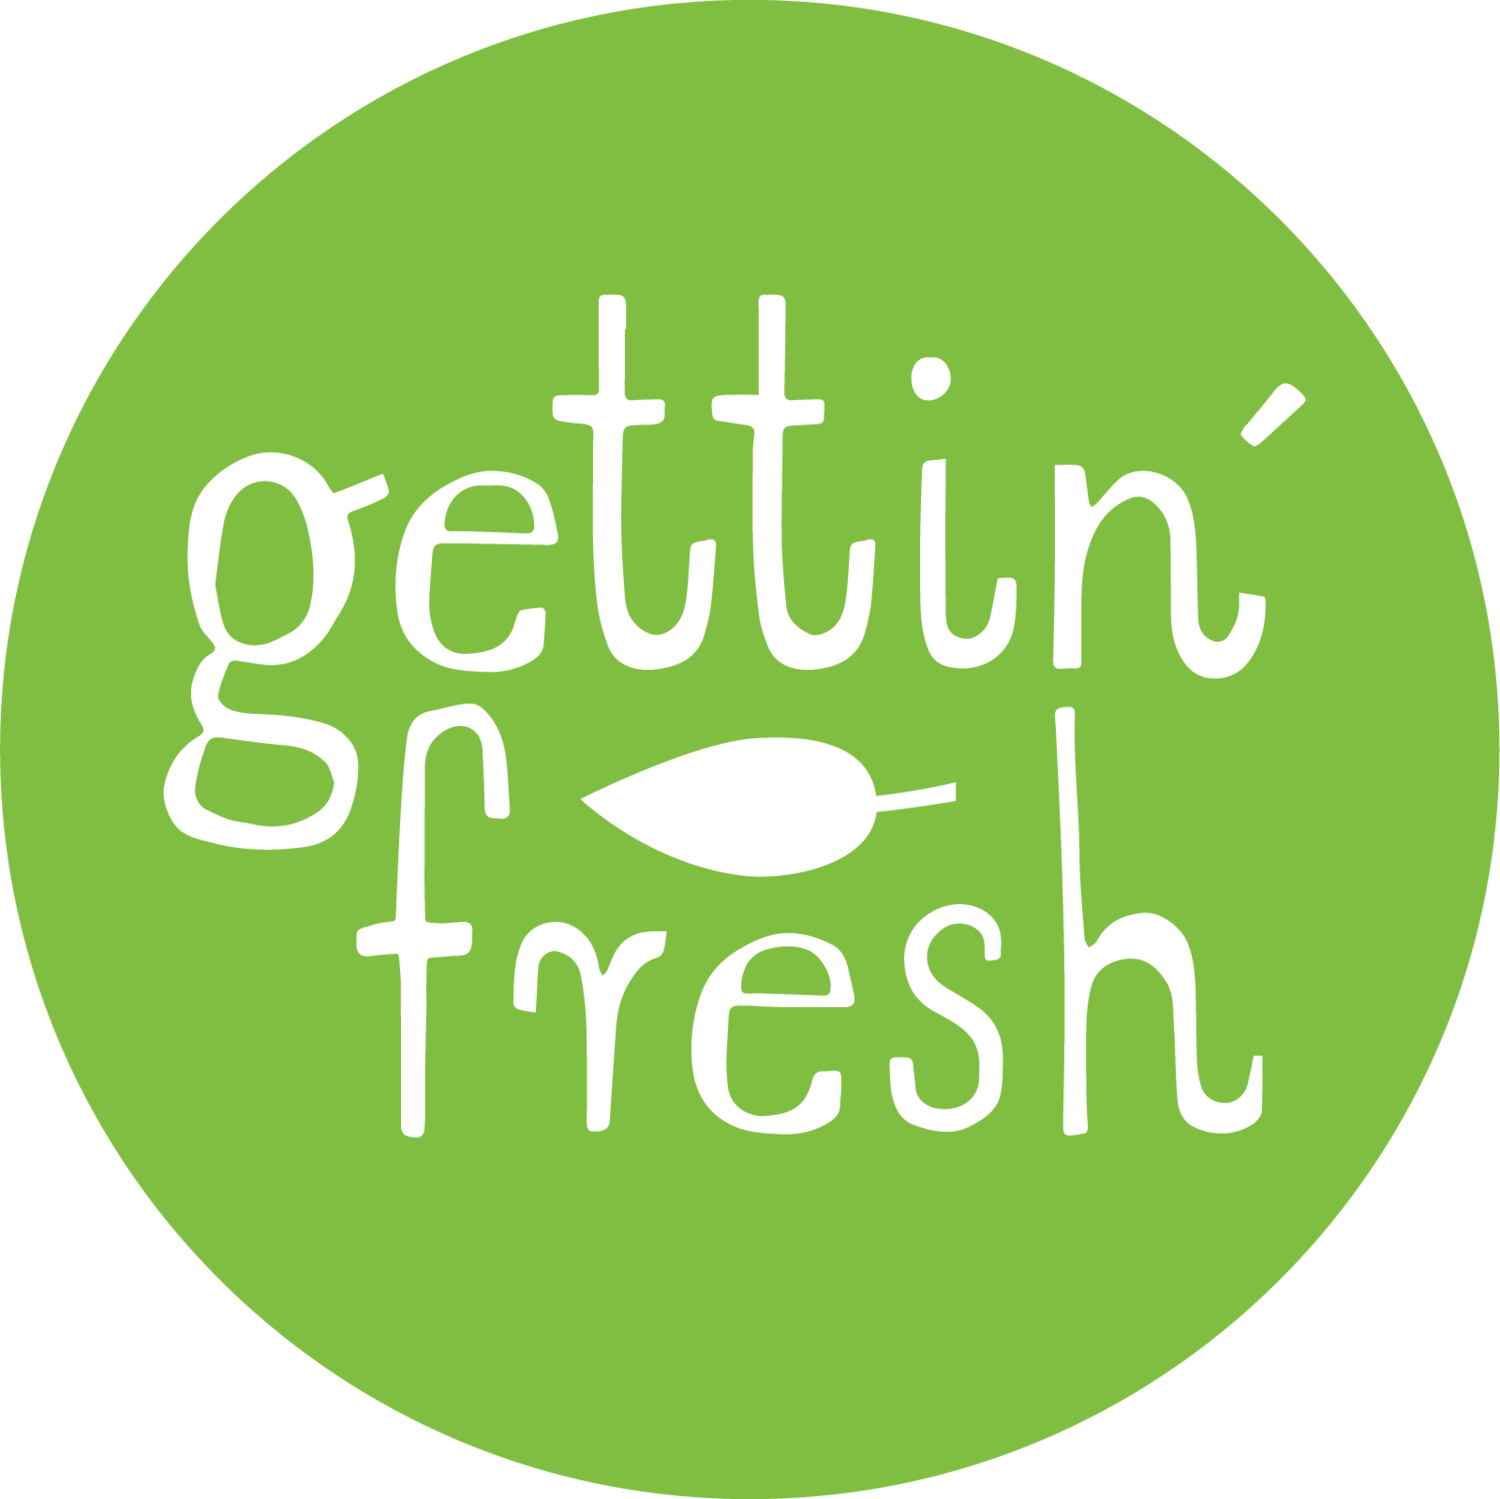 Gettin' Fresh, a Top Catering Company in Grand Rapids Announces Expanded Service for MI